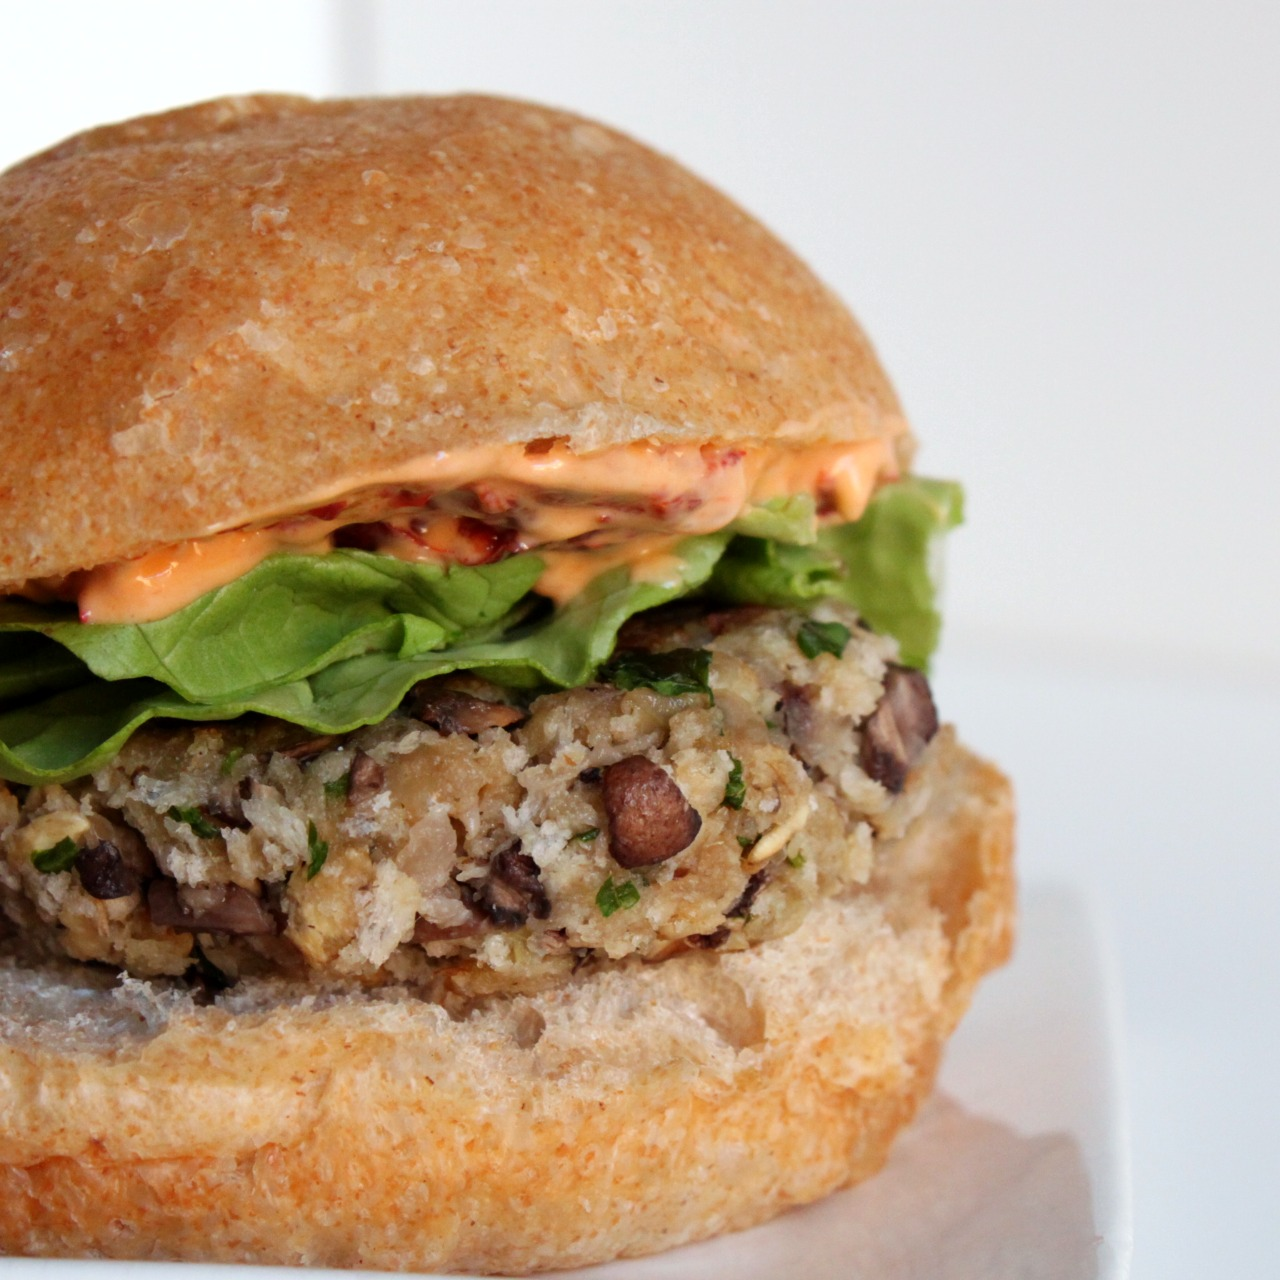 Awesome Mushroom Burgers With Chipotle Mayo 52 Kitchen Adventures Download Free Architecture Designs Scobabritishbridgeorg